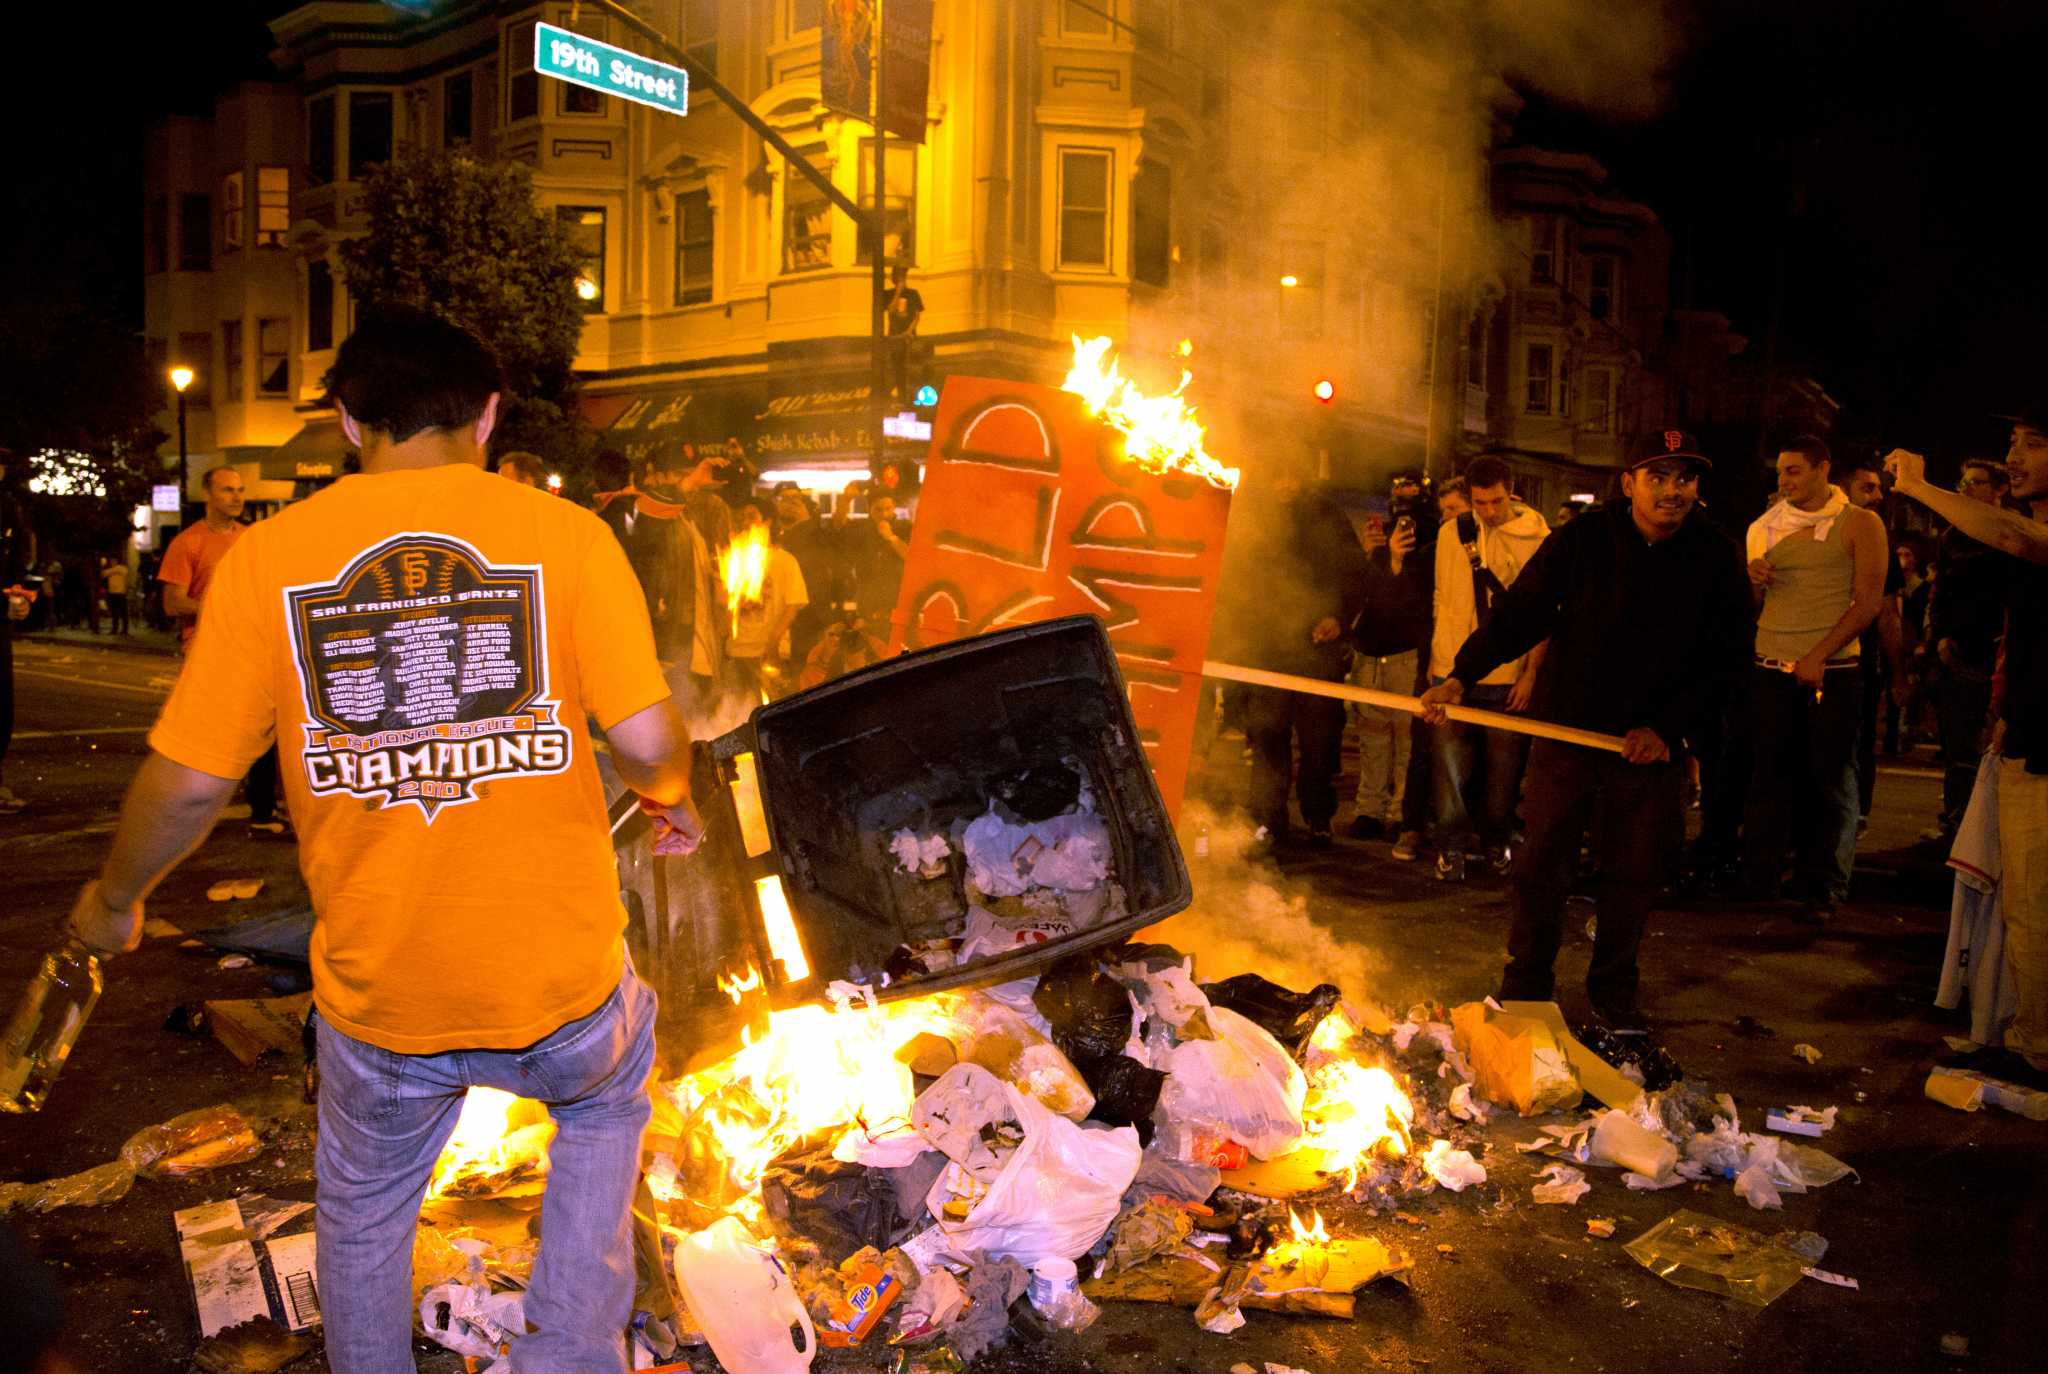 San Francisco Giant's fans celebrate the third World Series win in the last five years by starting fires and rioting on Valencia Street in the city's Mission District on Wednesday night Oct 30, 2014.